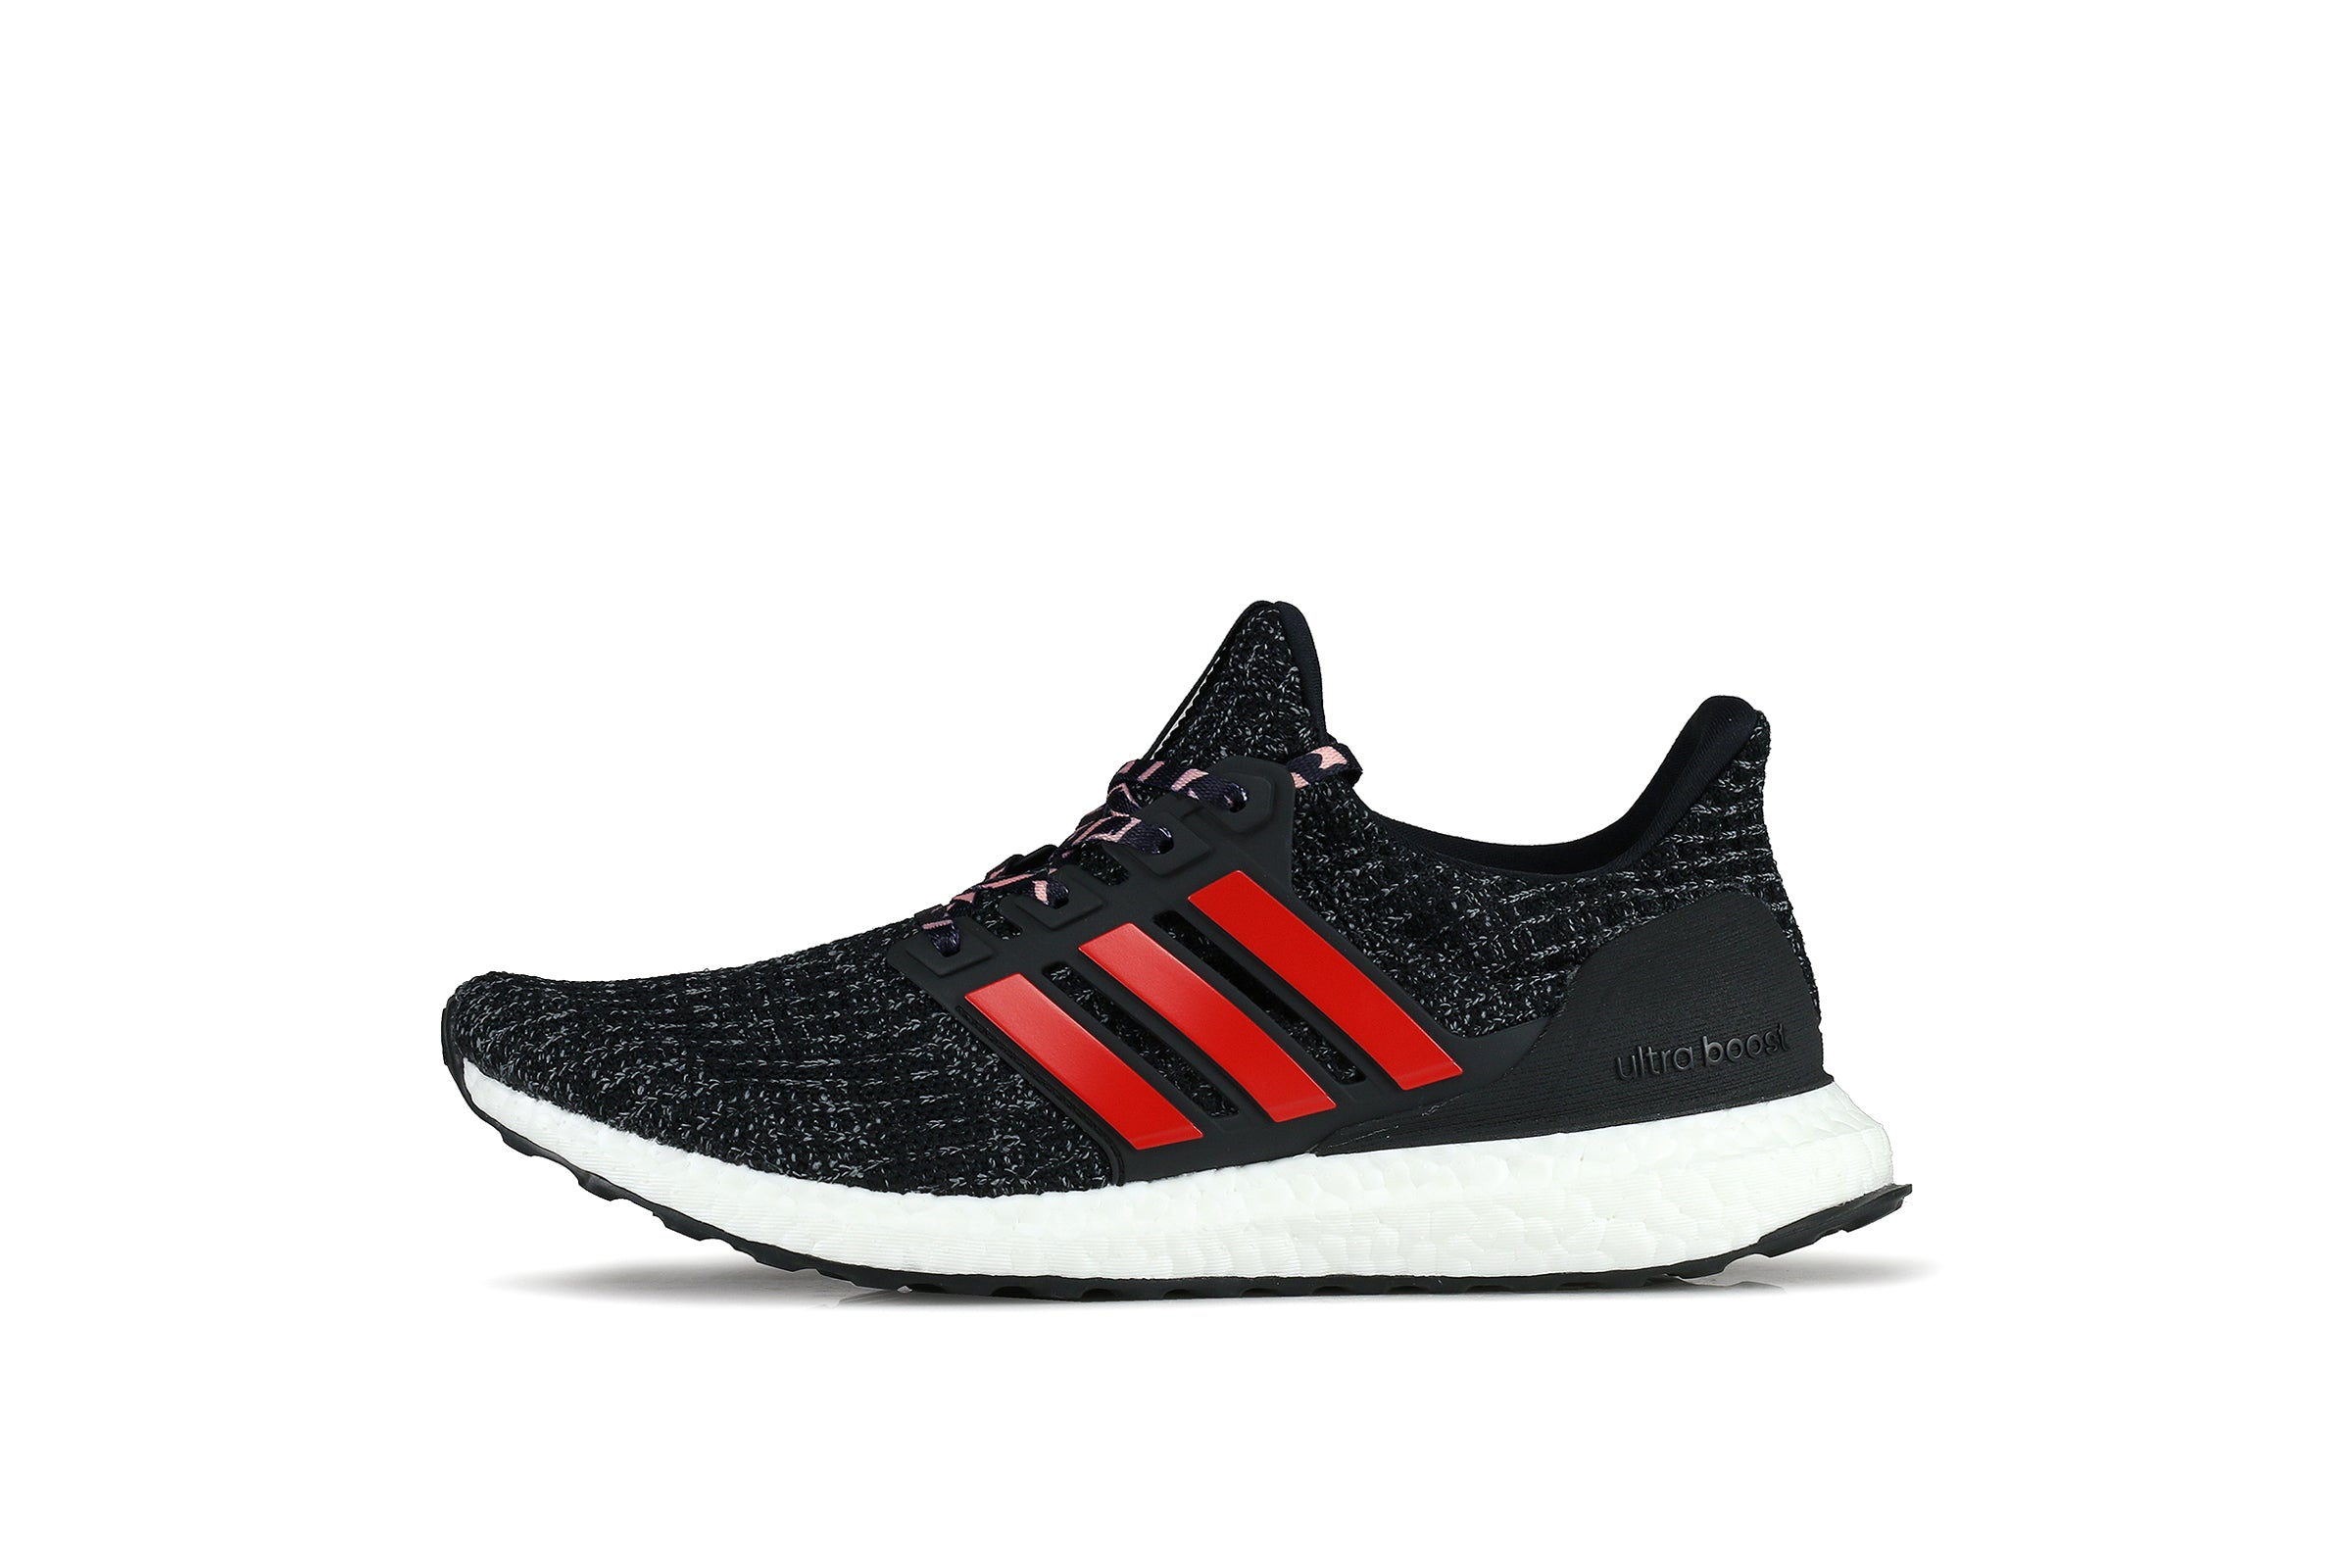 huge discount c7325 38b23 Adidas Ultraboost